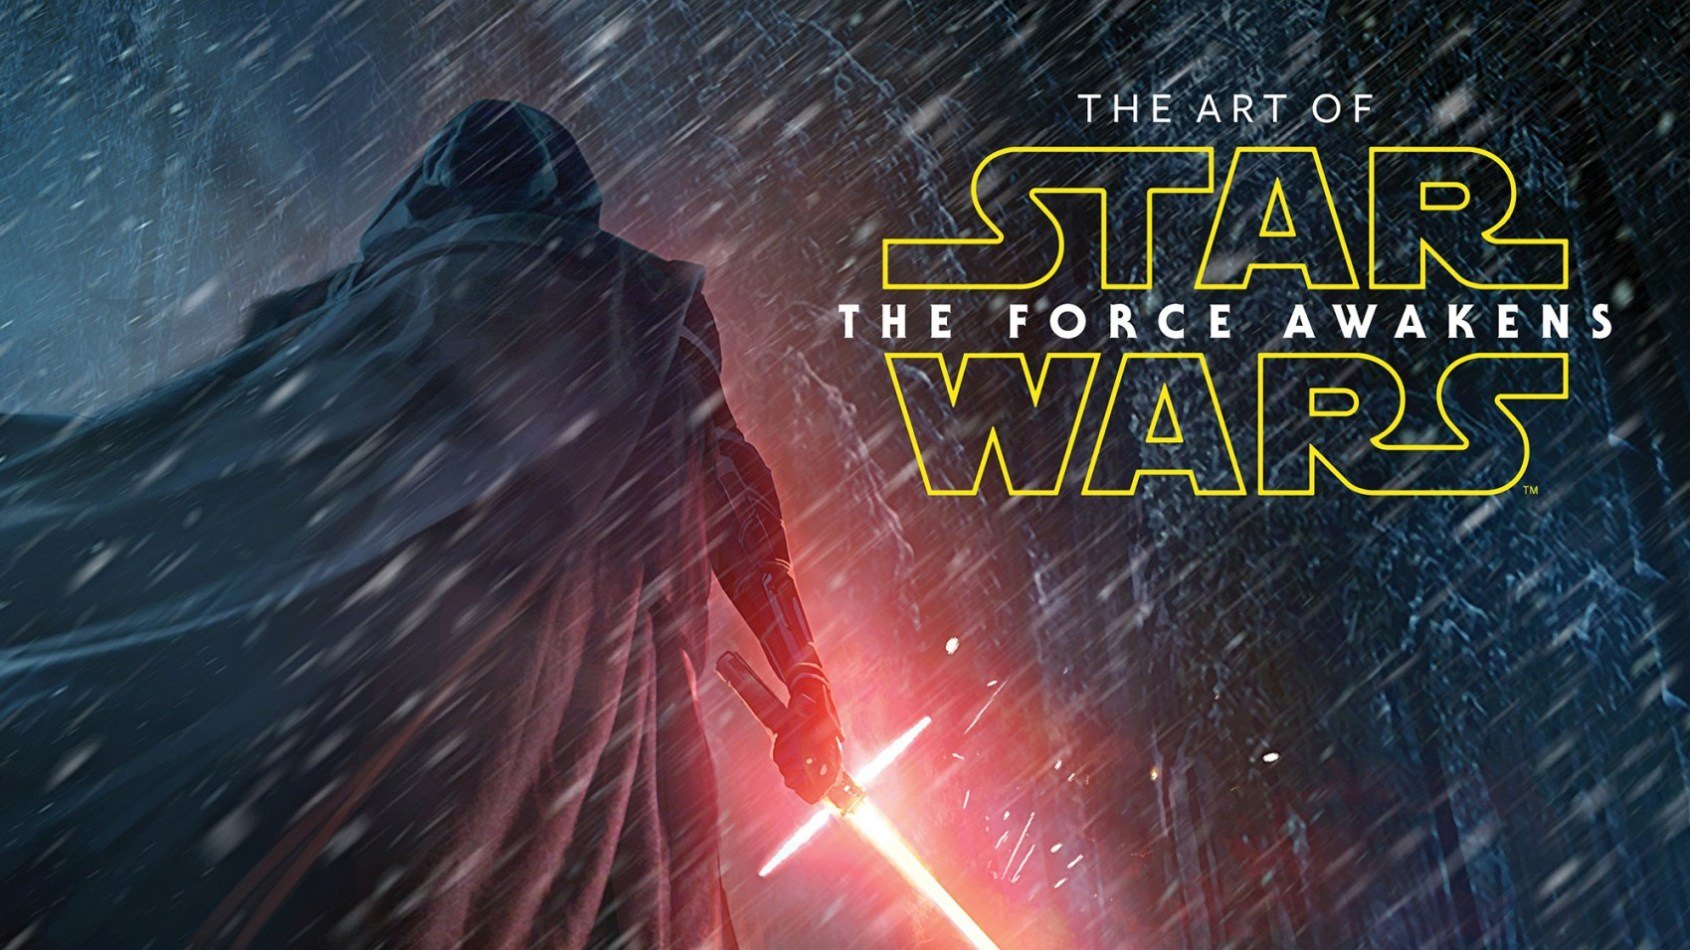 Review de The Art of The Force Awakens